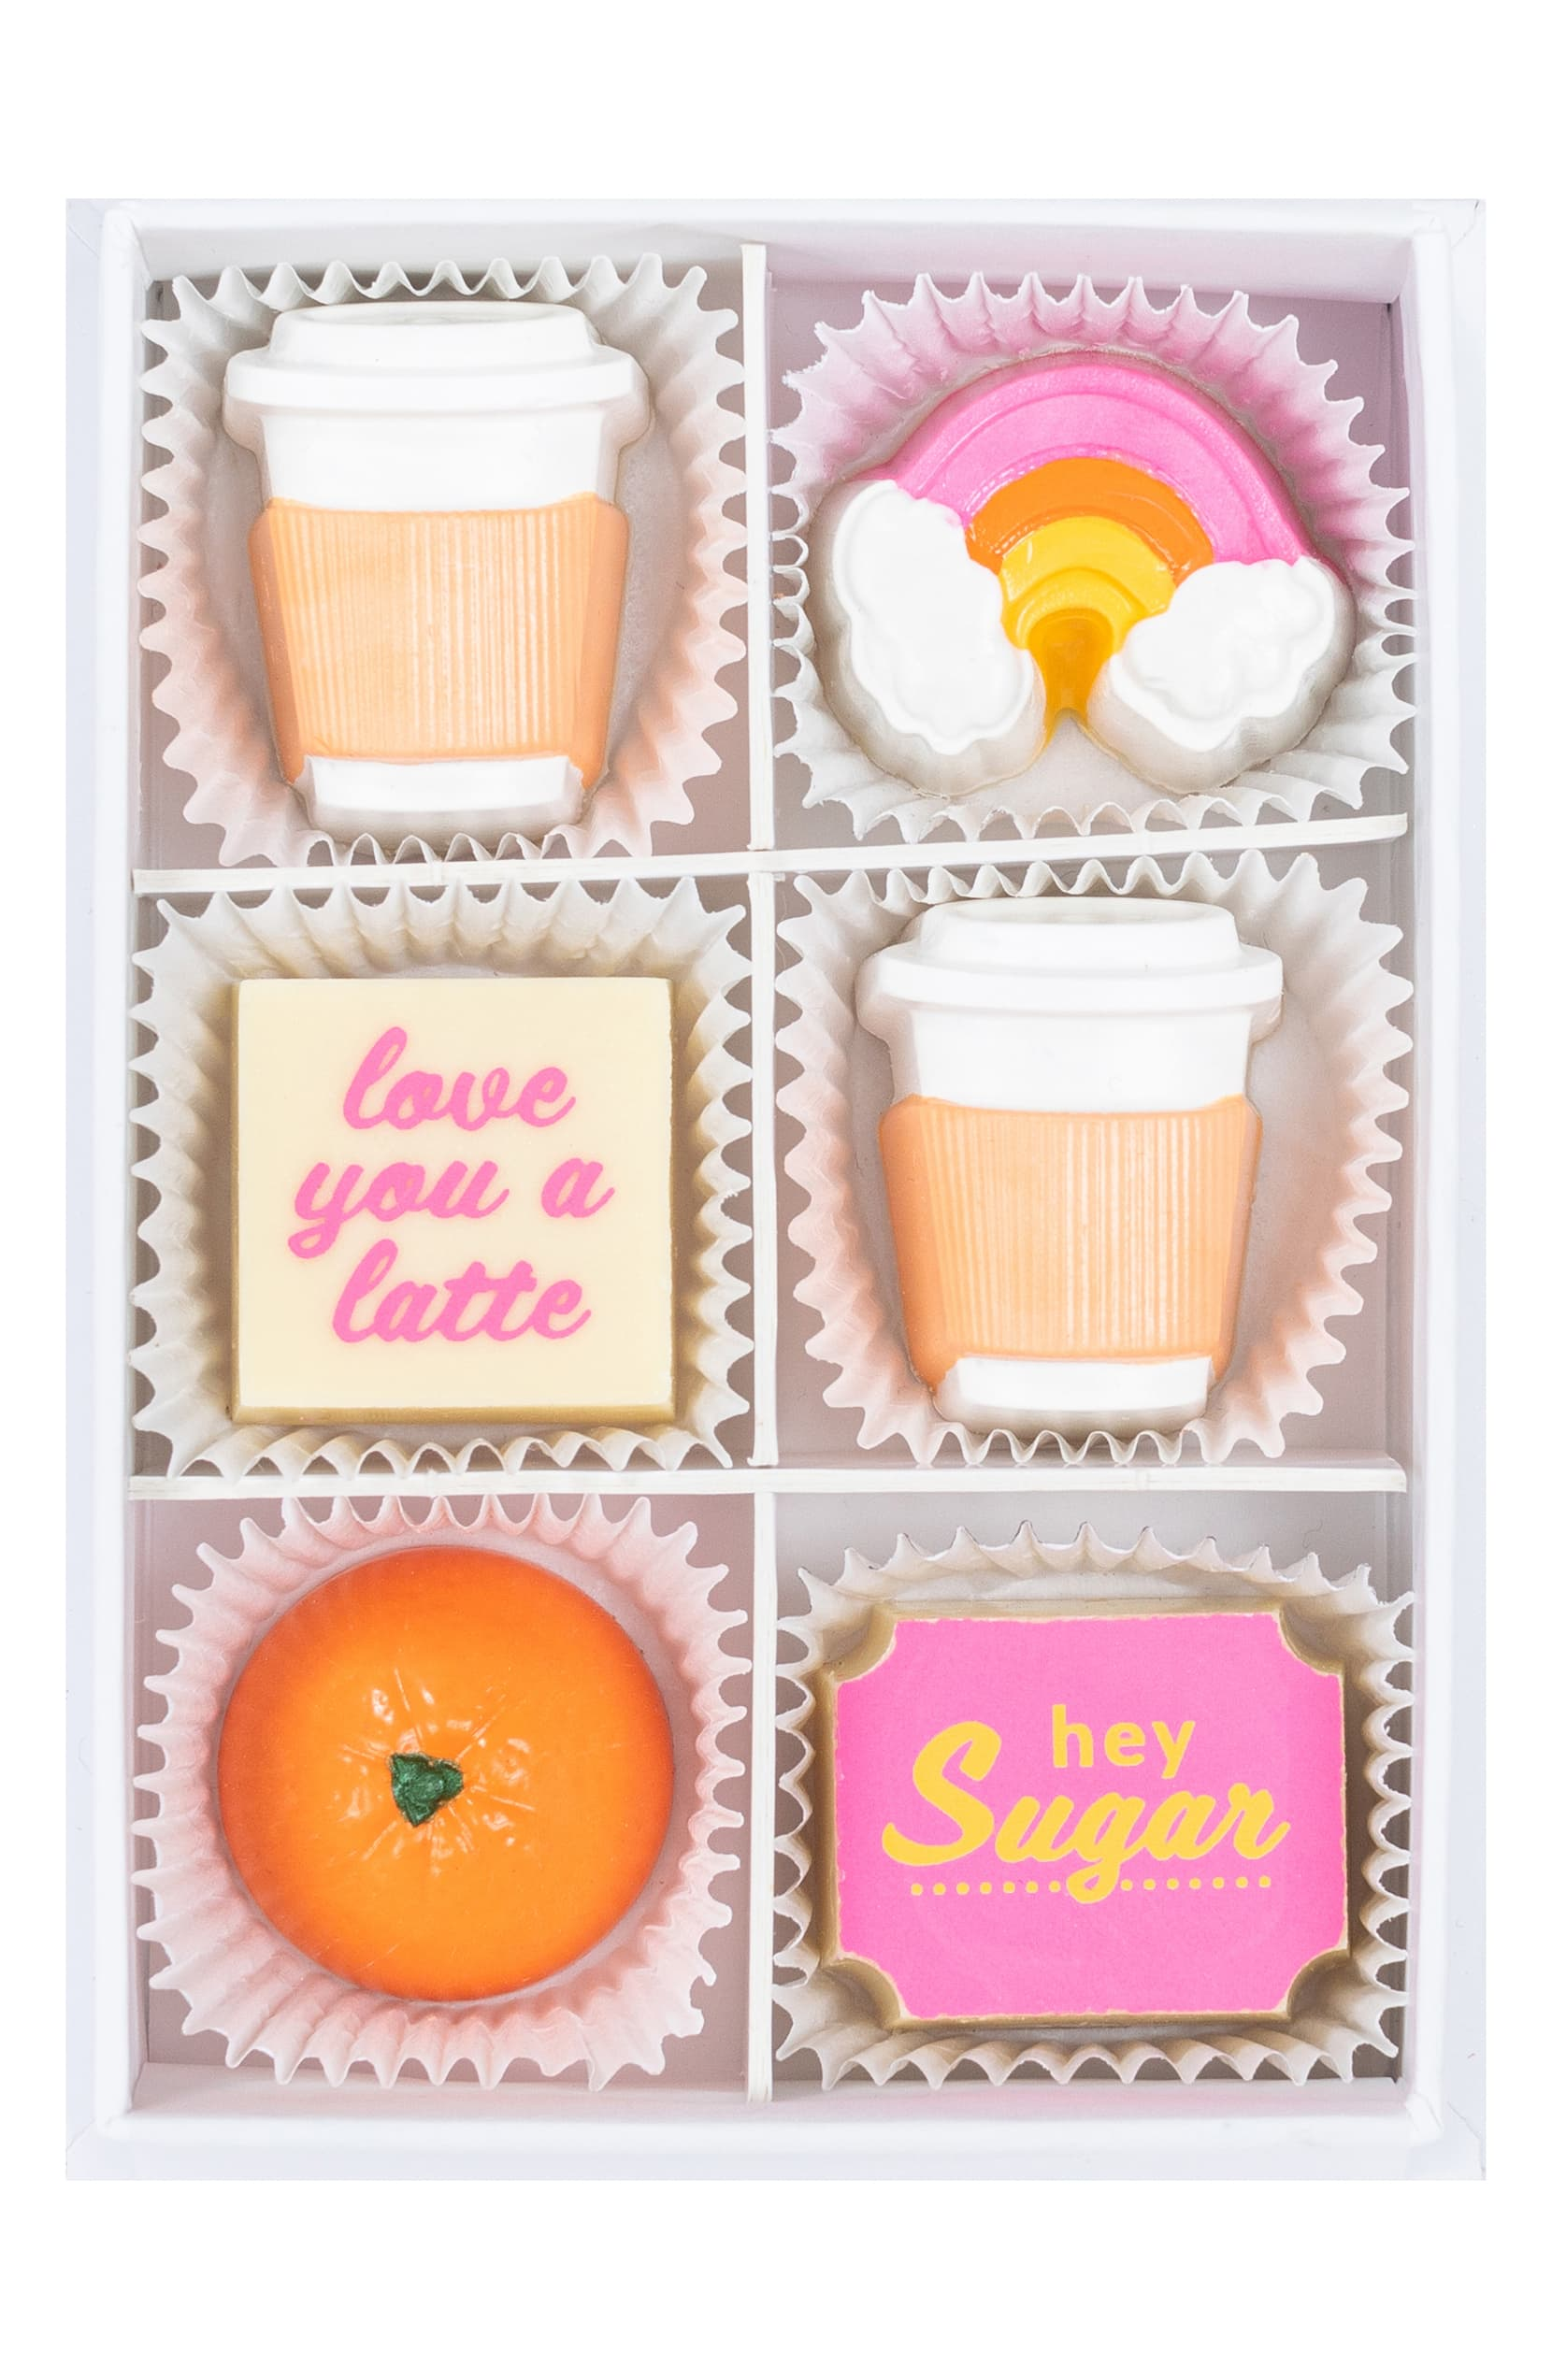 Chocolate for breakfast seems like a sweet start to the day, and this box of hand-painted confections is a treat that's worth getting out of bed for. Shop it: $32 (Image: Nordstrom){ }